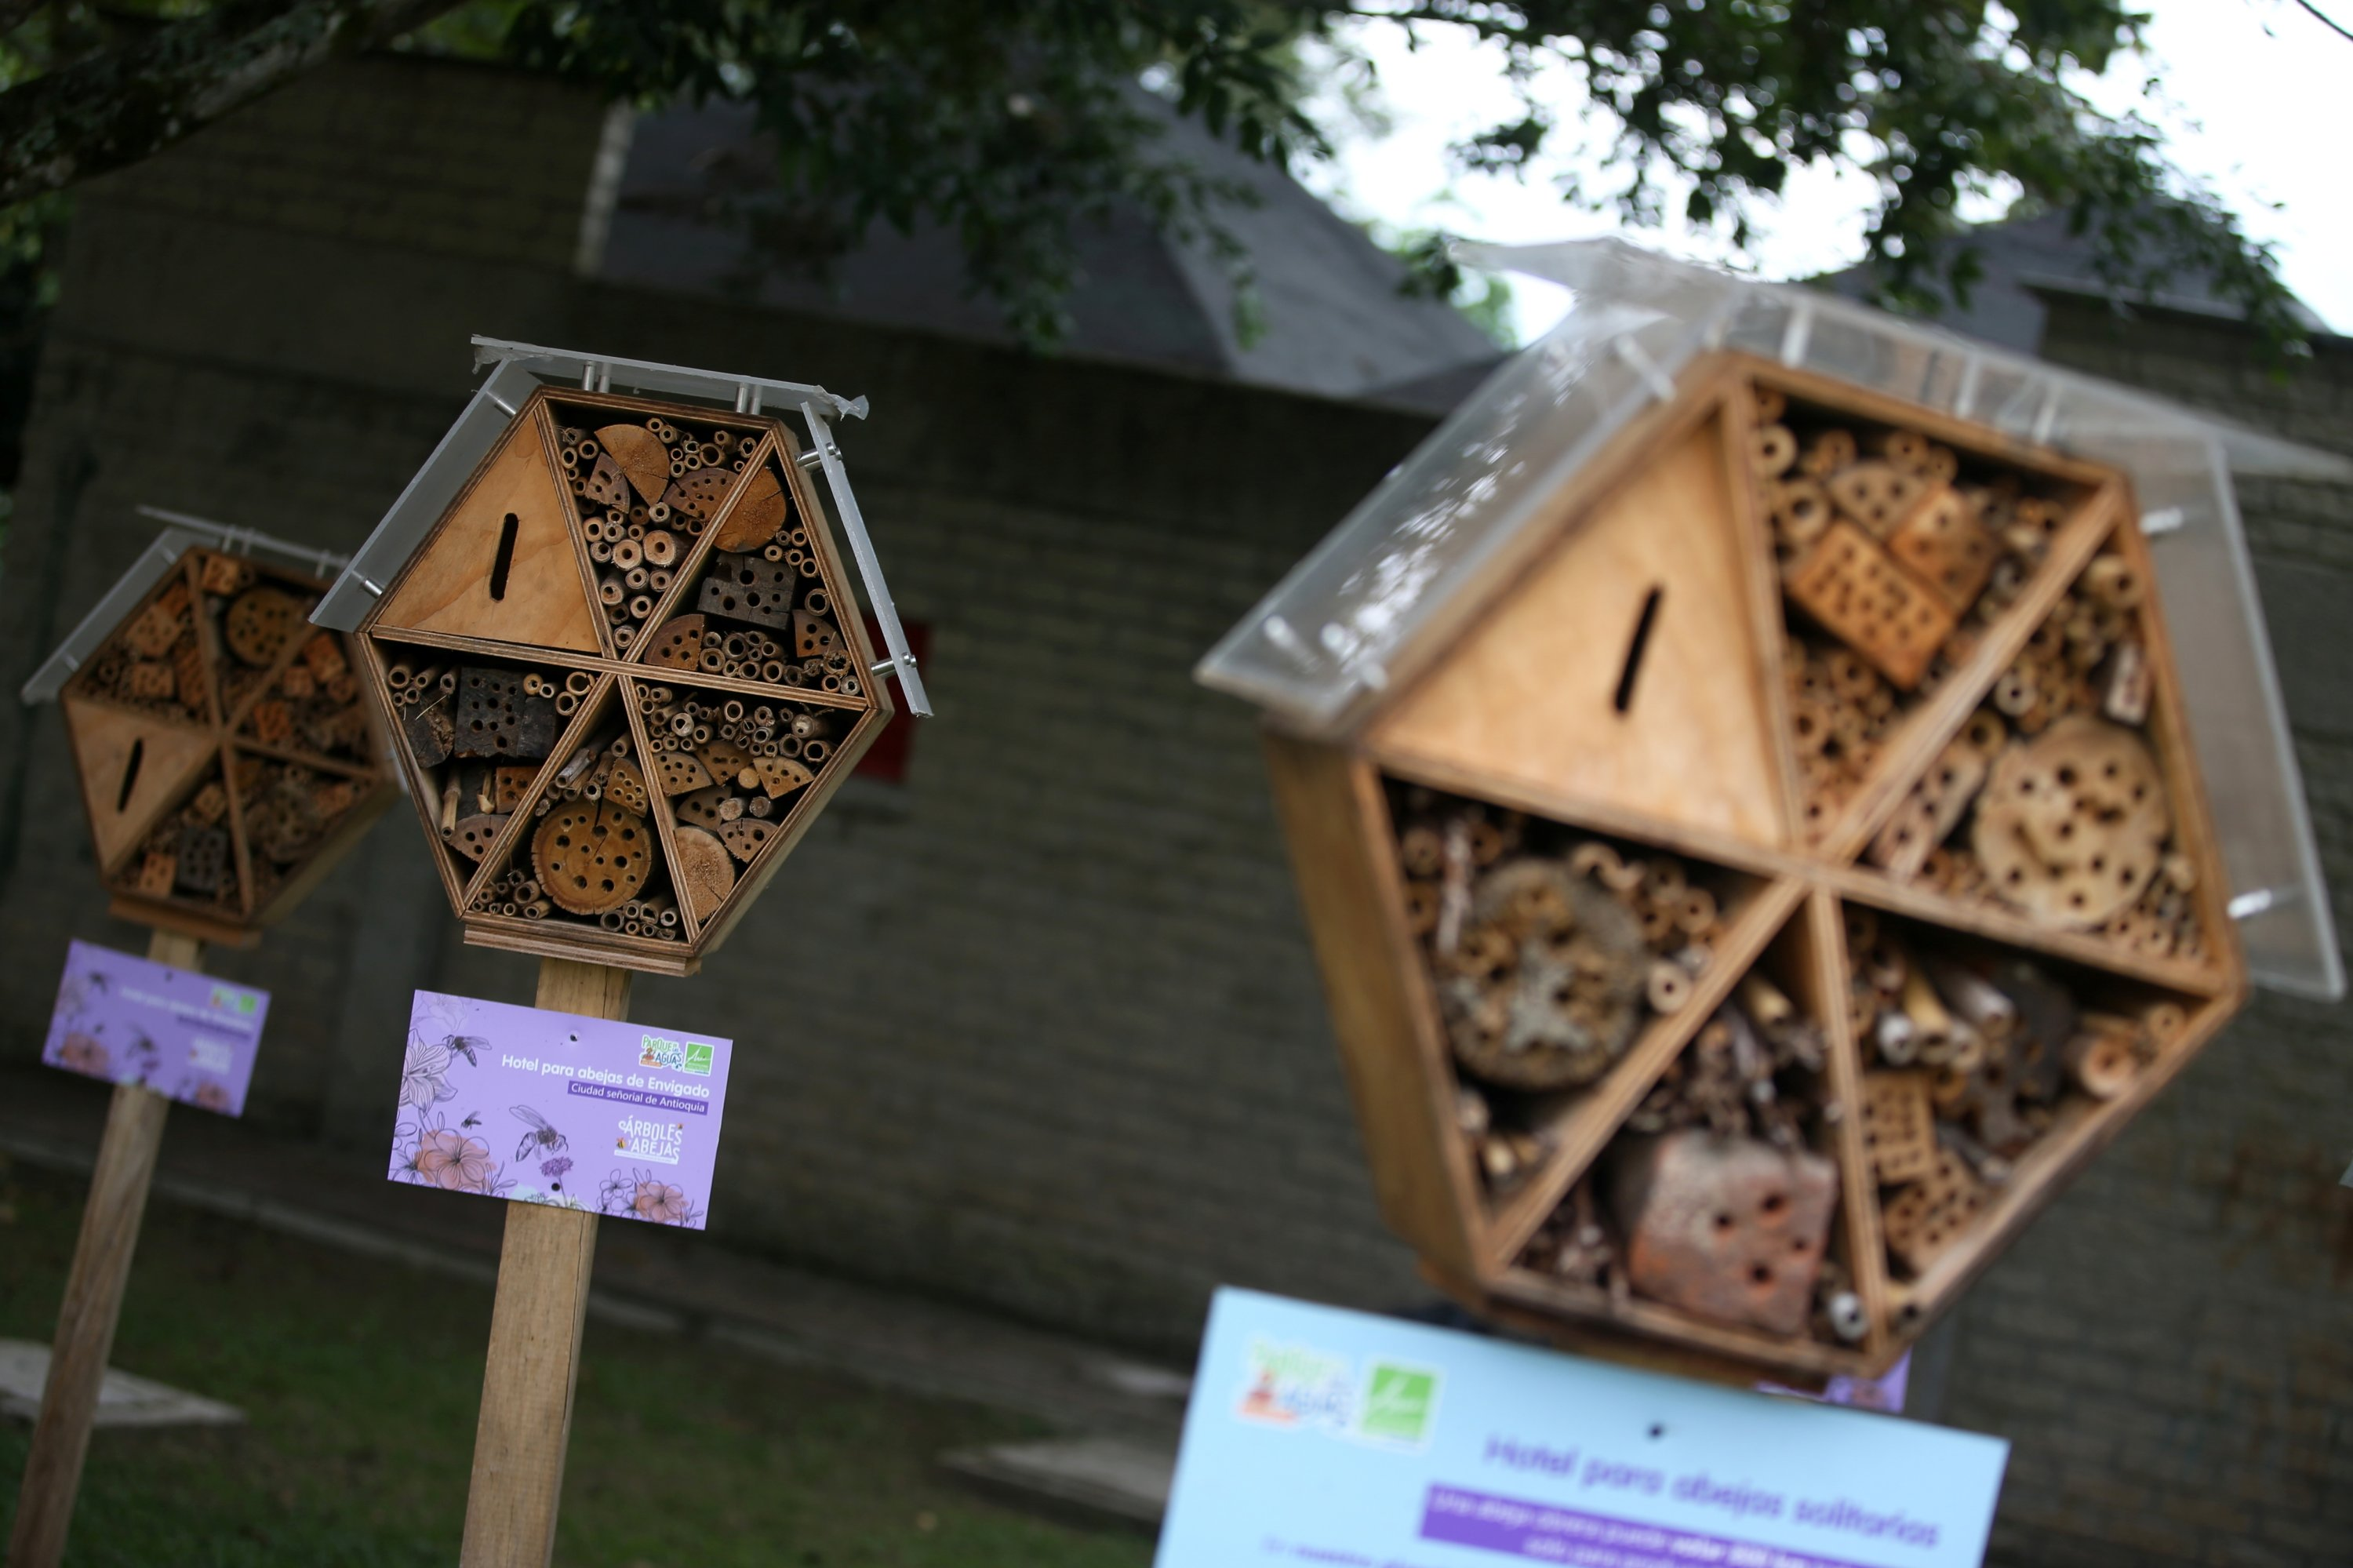 Wooden hotels for solitary bees made by the Metropolitan Area of the Aburra Valley (AMVA) are seen inside the Water Park in Barbosa, Colombia, April 21, 2021. (Reuters Photo)